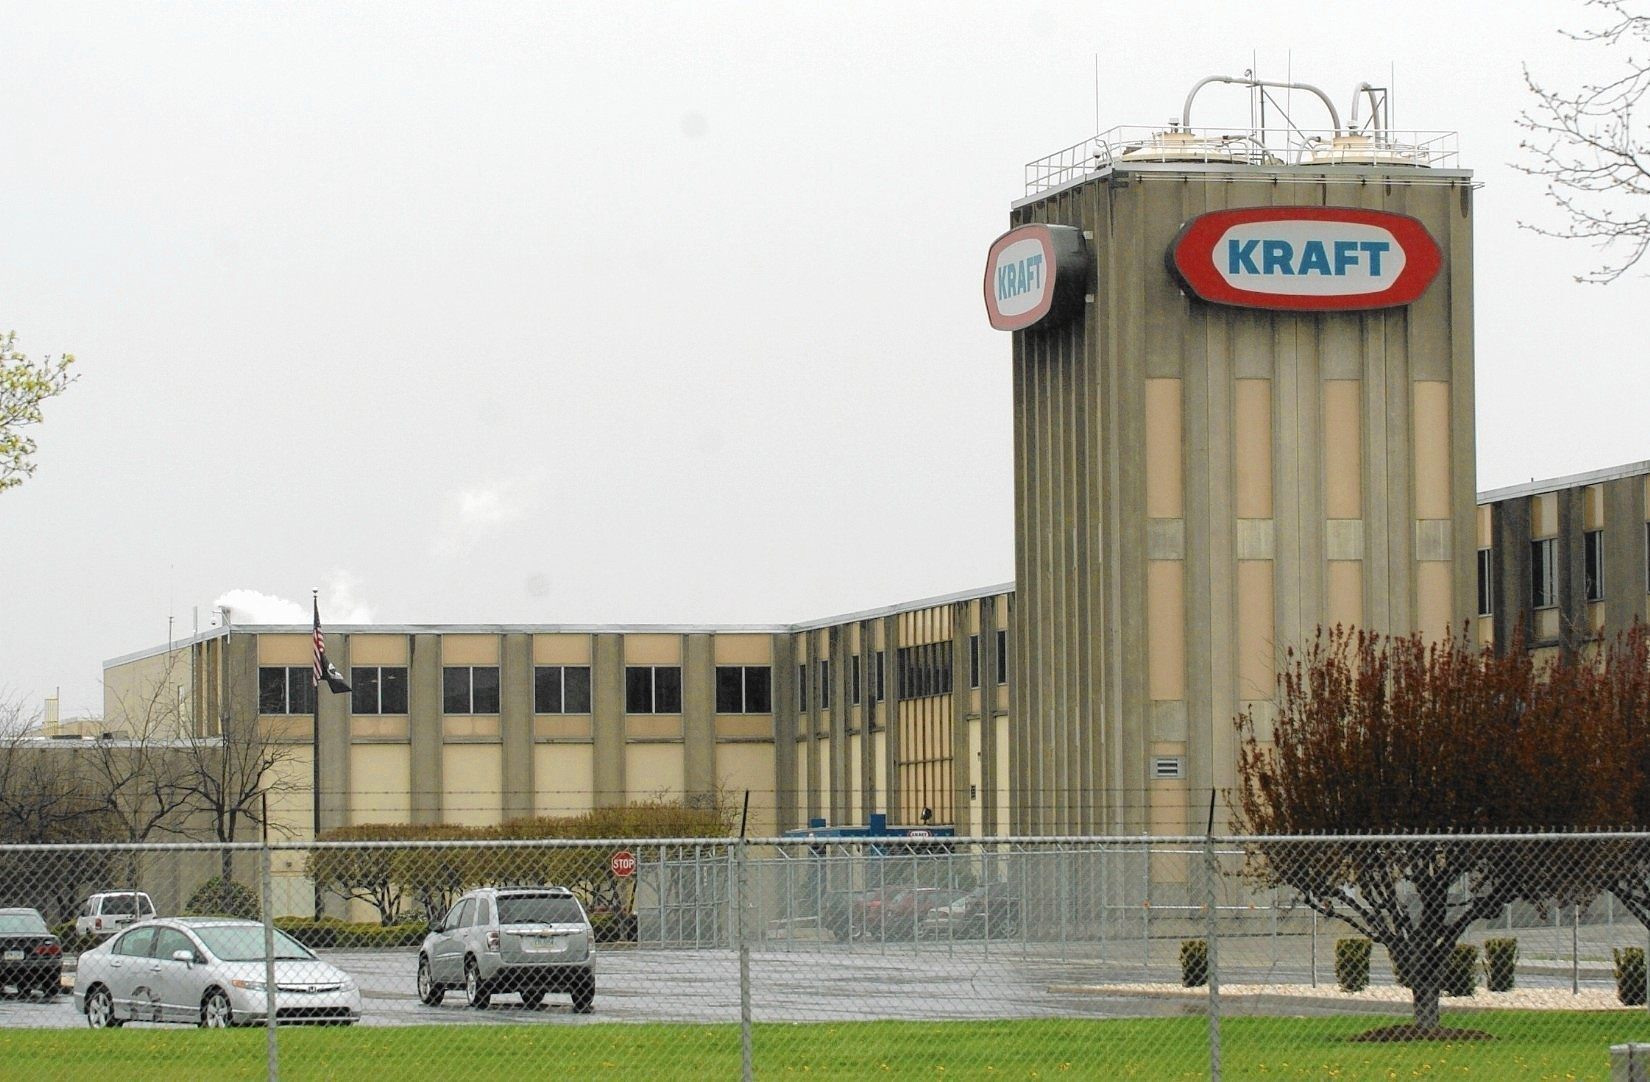 Kraft Shutting Down Factories